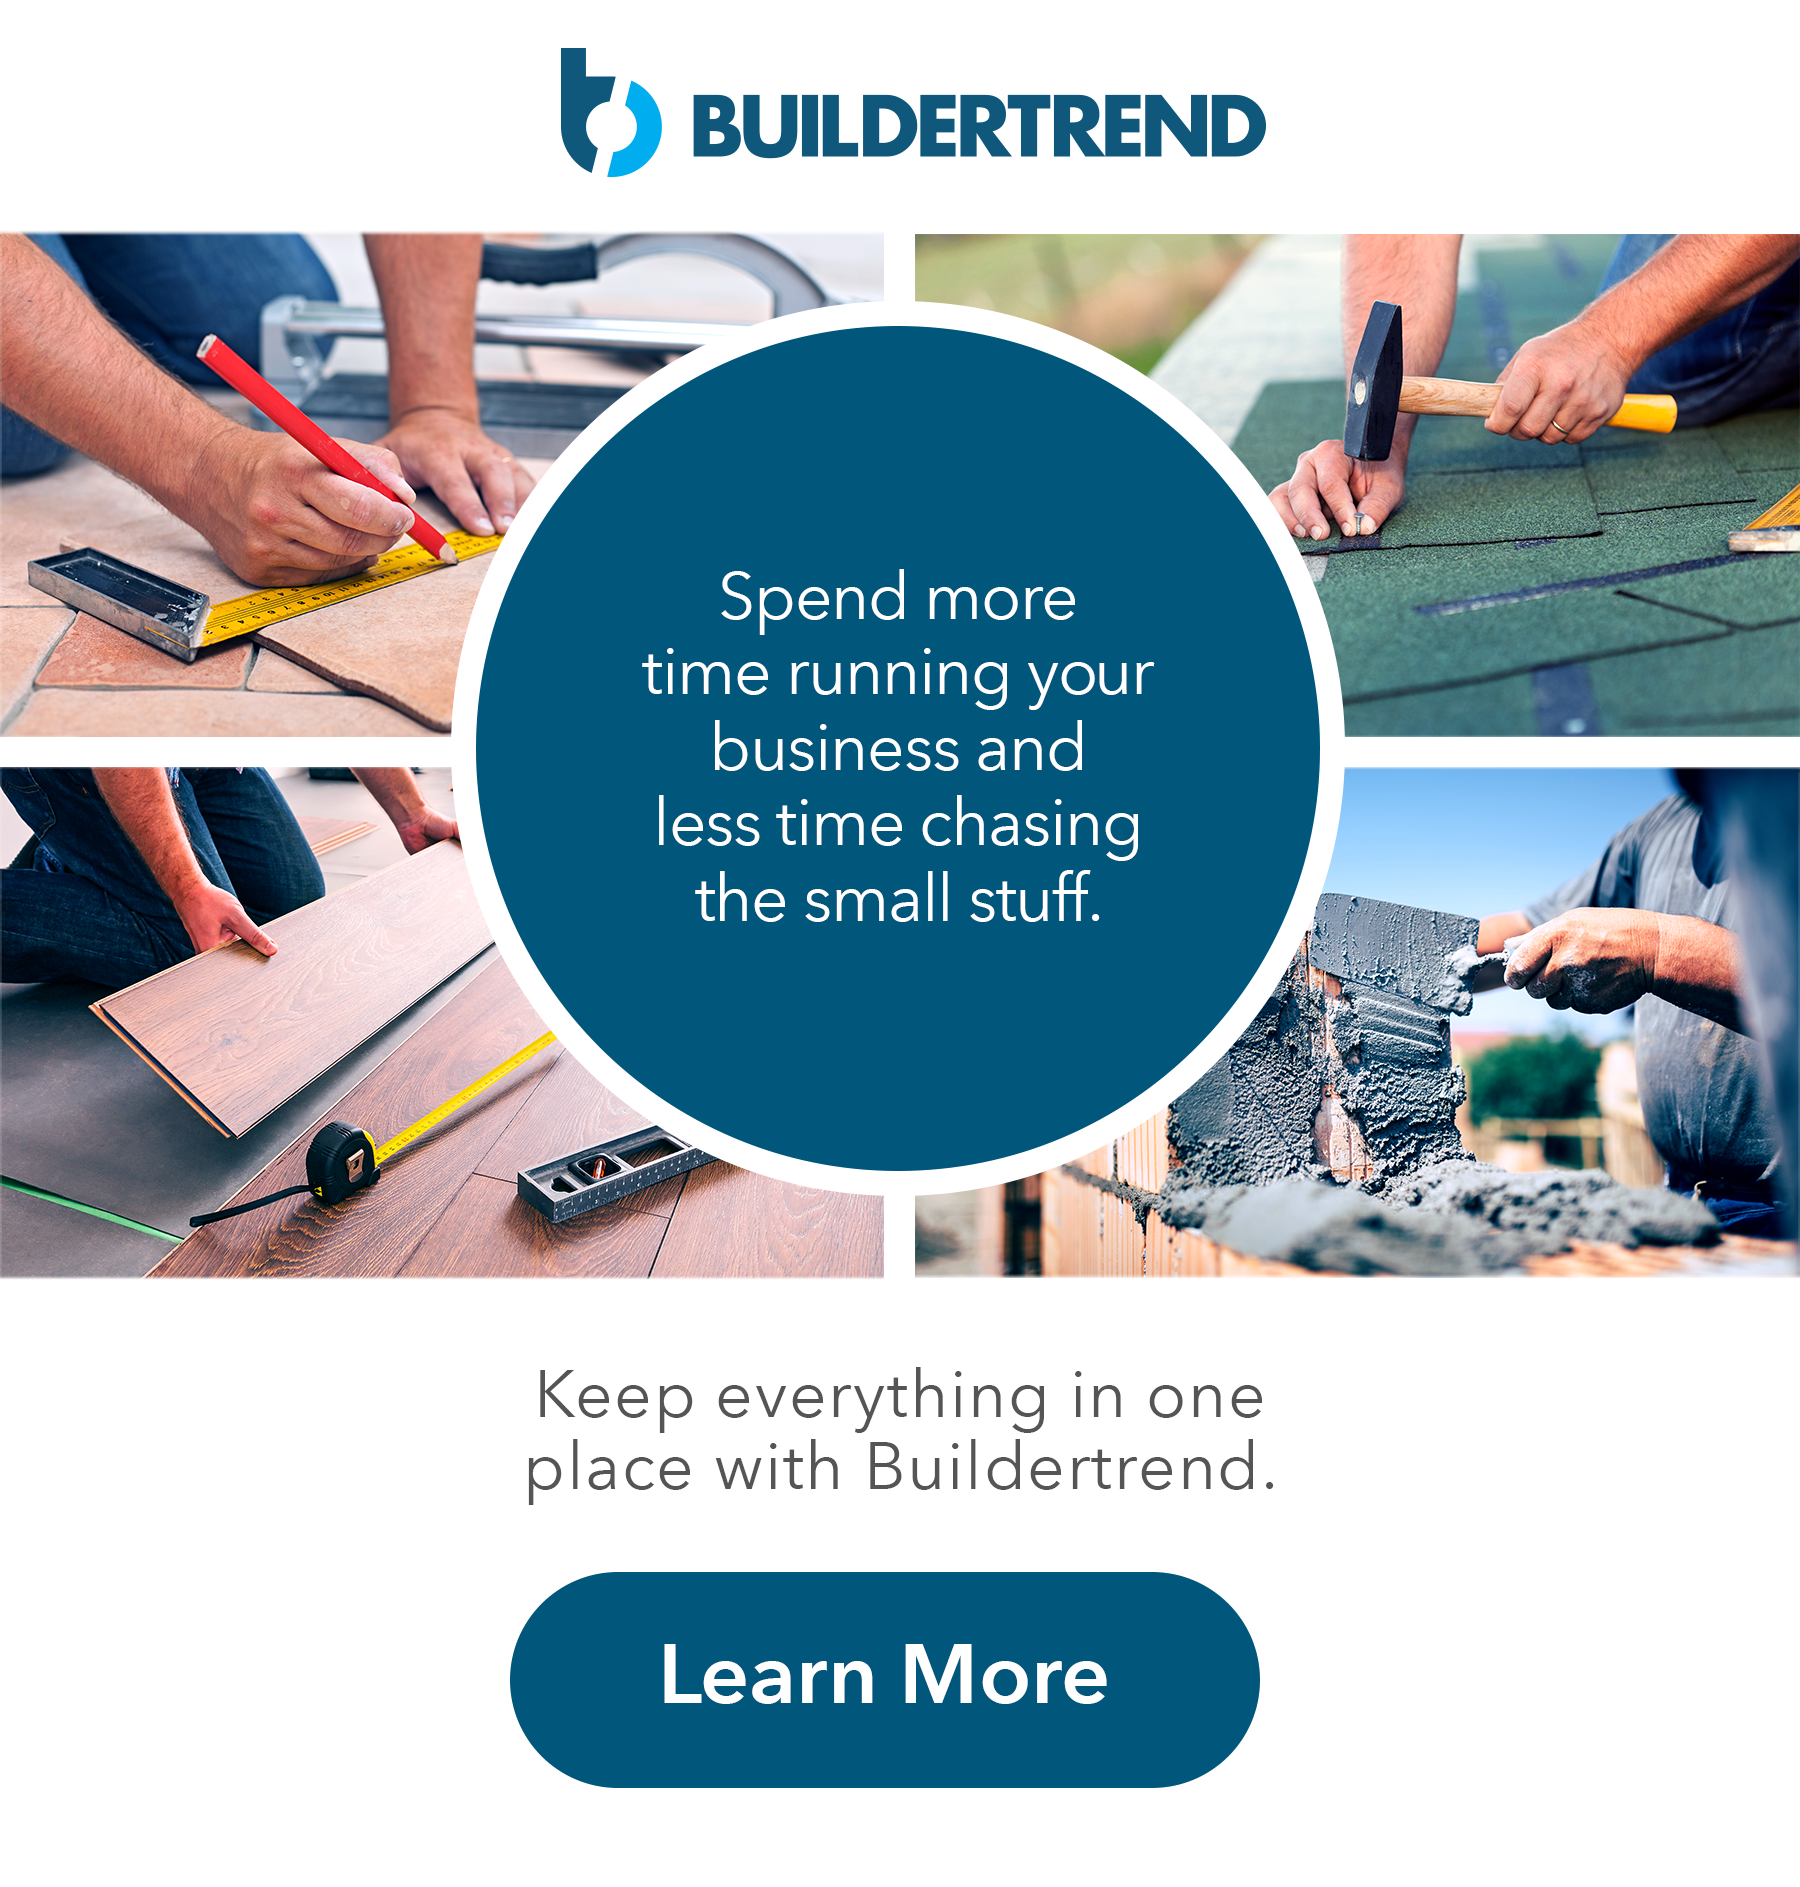 spend more time running your business and less time chasing the small stuff - keep everything in one place with buildertrend - learn more